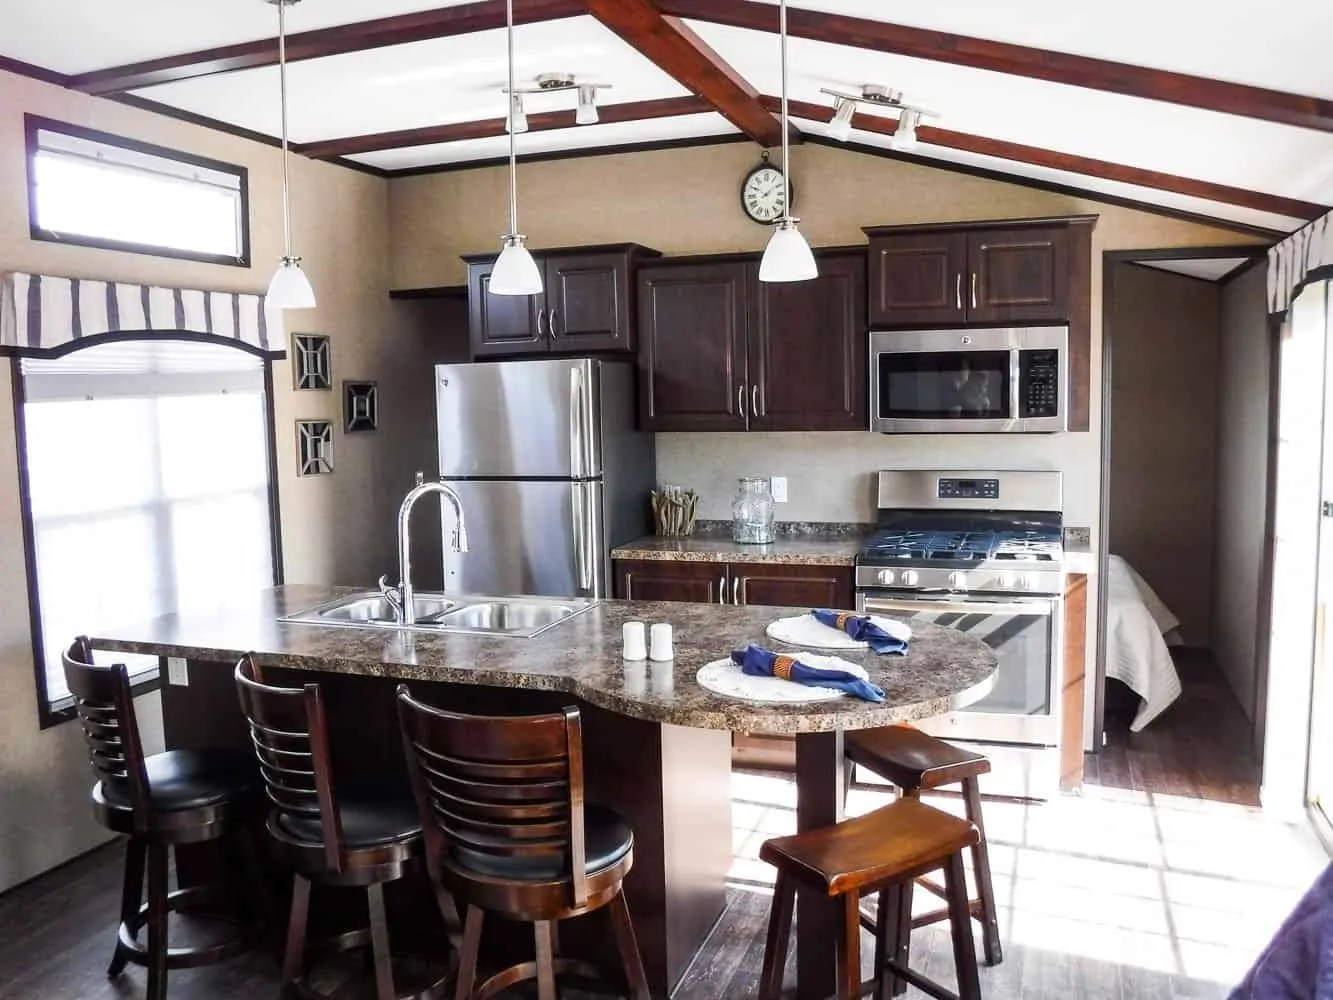 Make Vacay Matter More with Stays at Sherkston Shores! — Premium Rental Cottage Kitchen